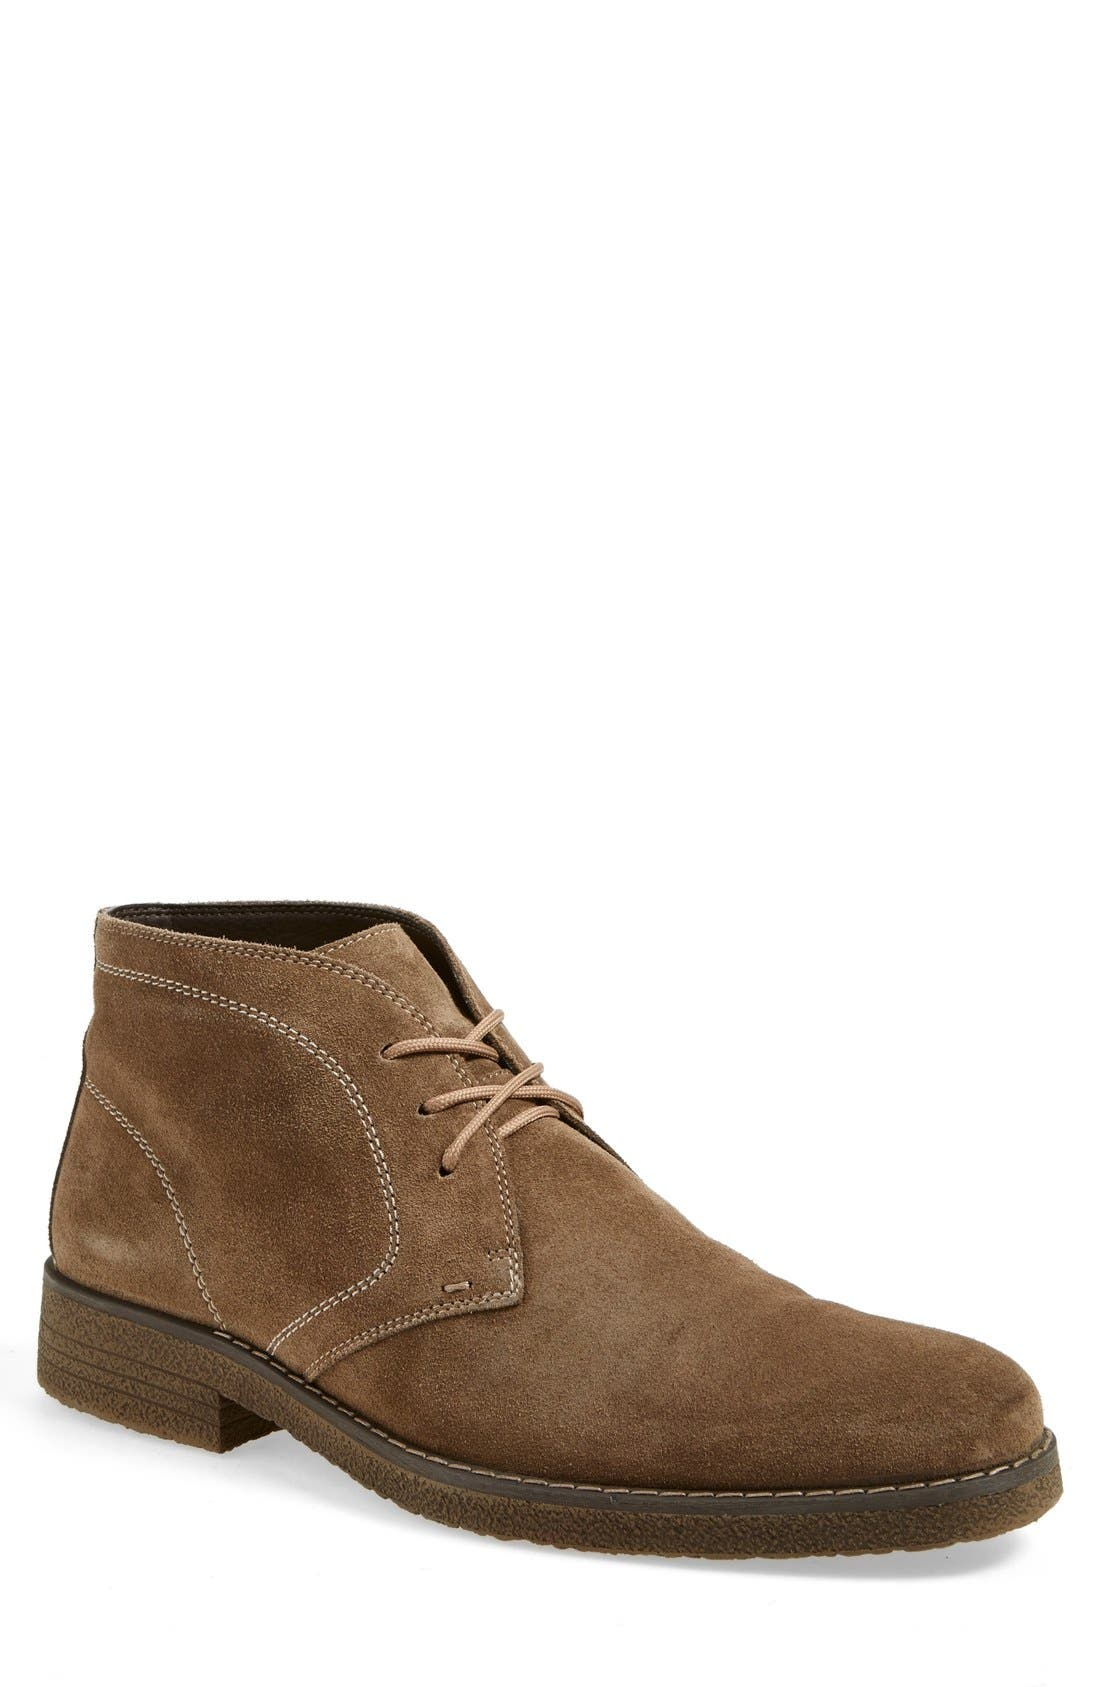 'Tyler' Chukka Boot,                             Main thumbnail 4, color,